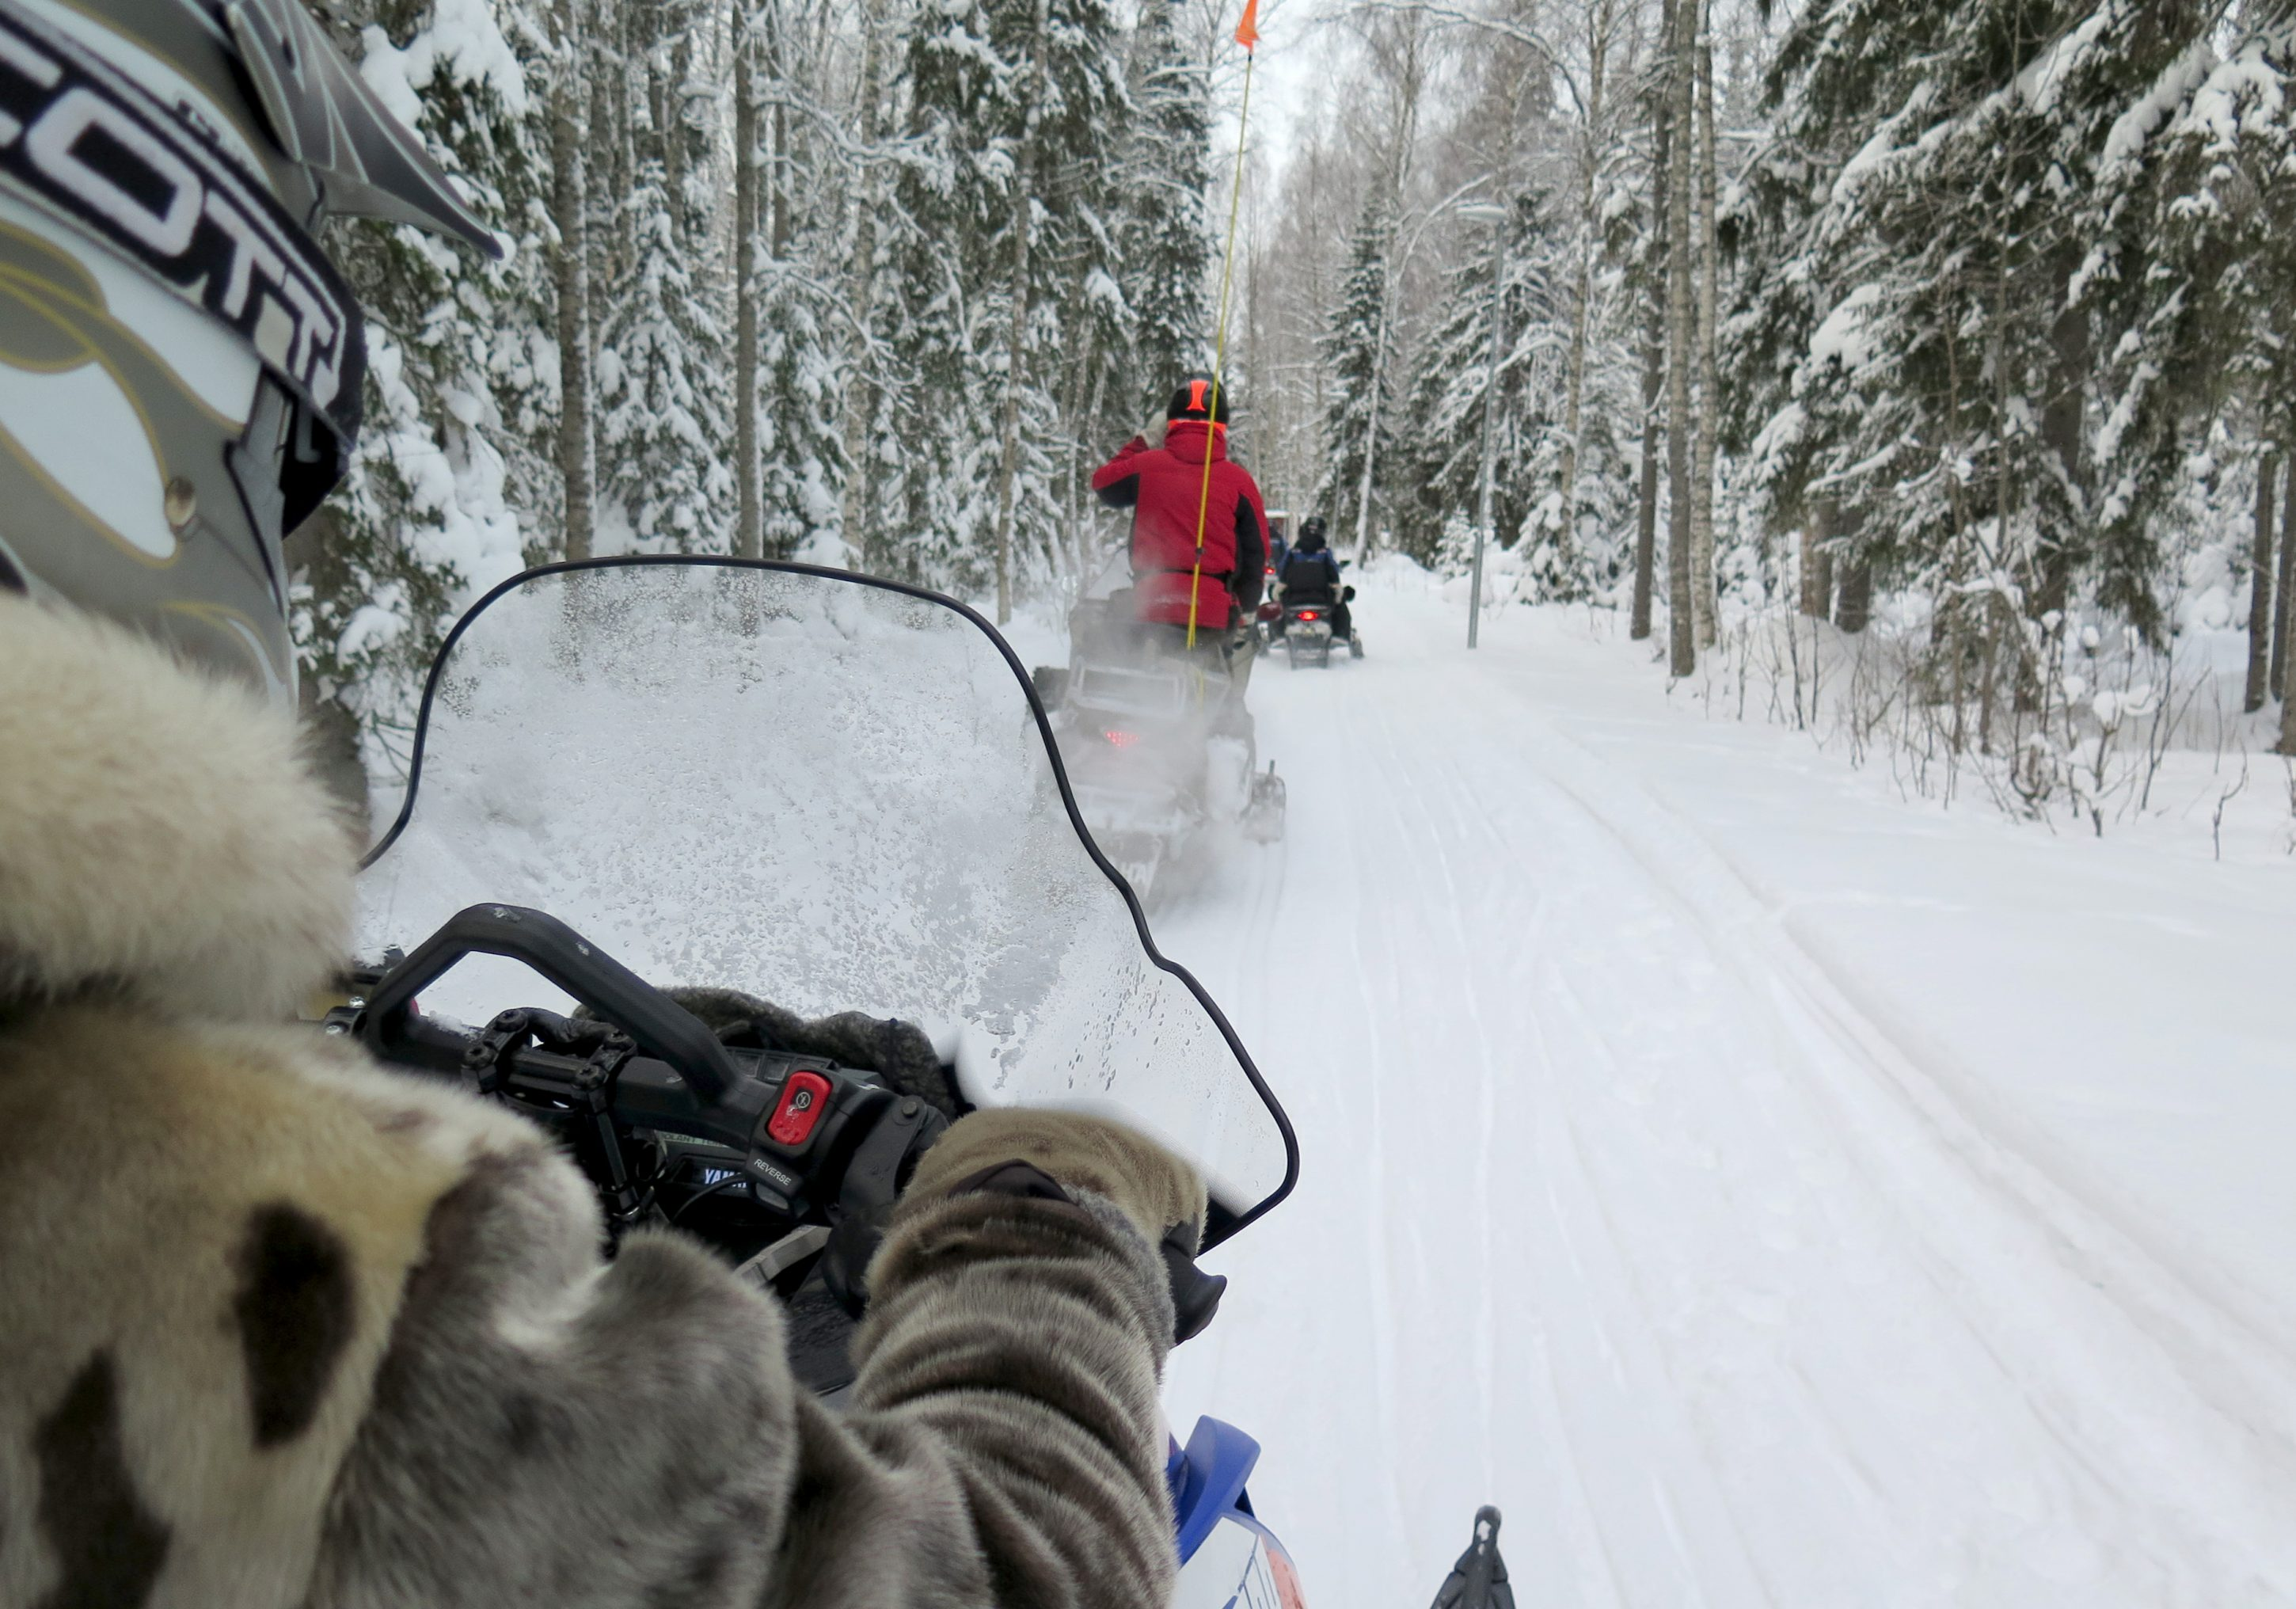 Snow mobile tour in Swedish Lapland.